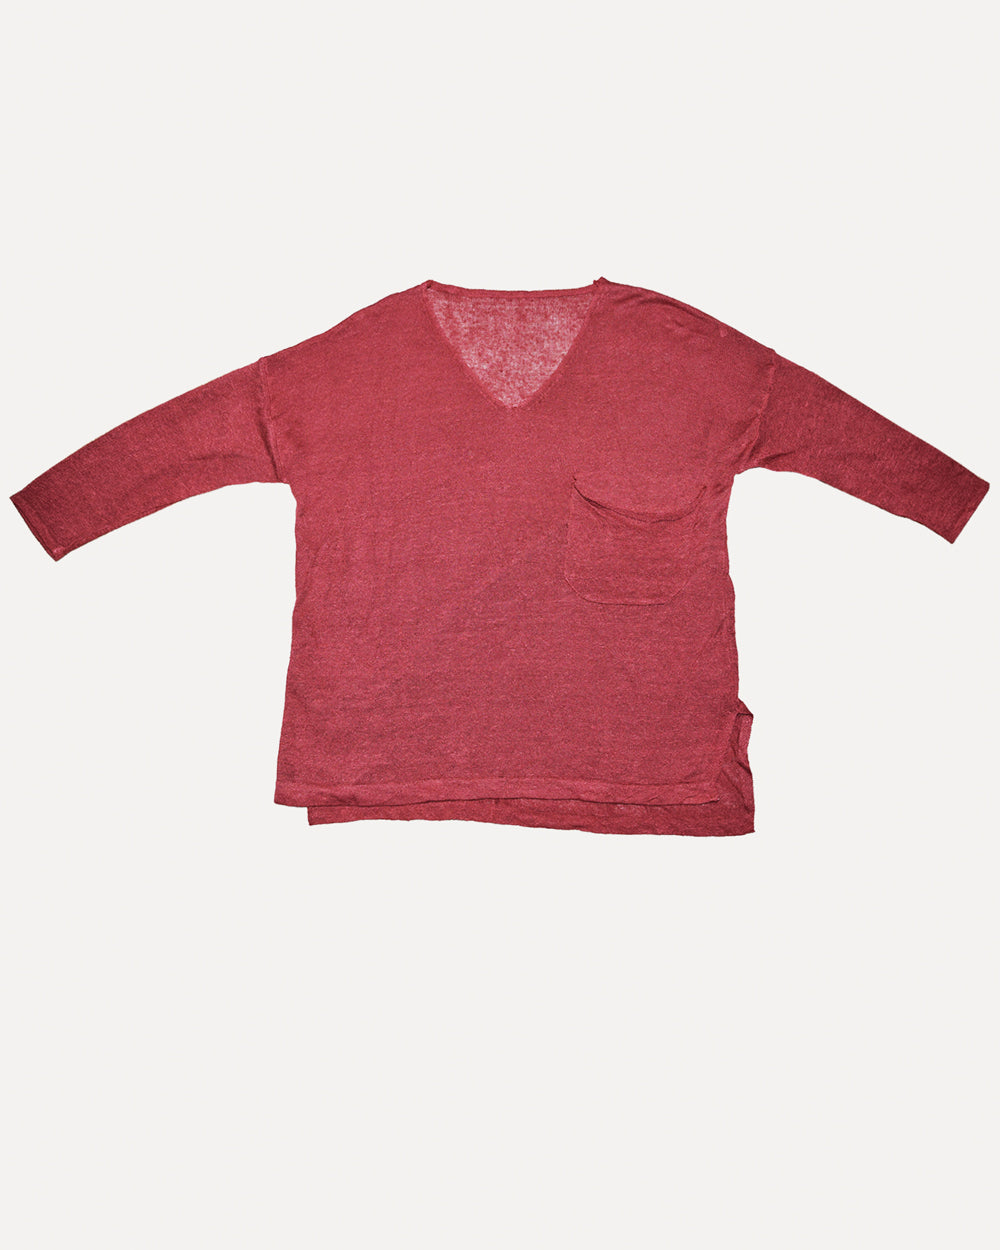 Linen Rust Red Knit | S